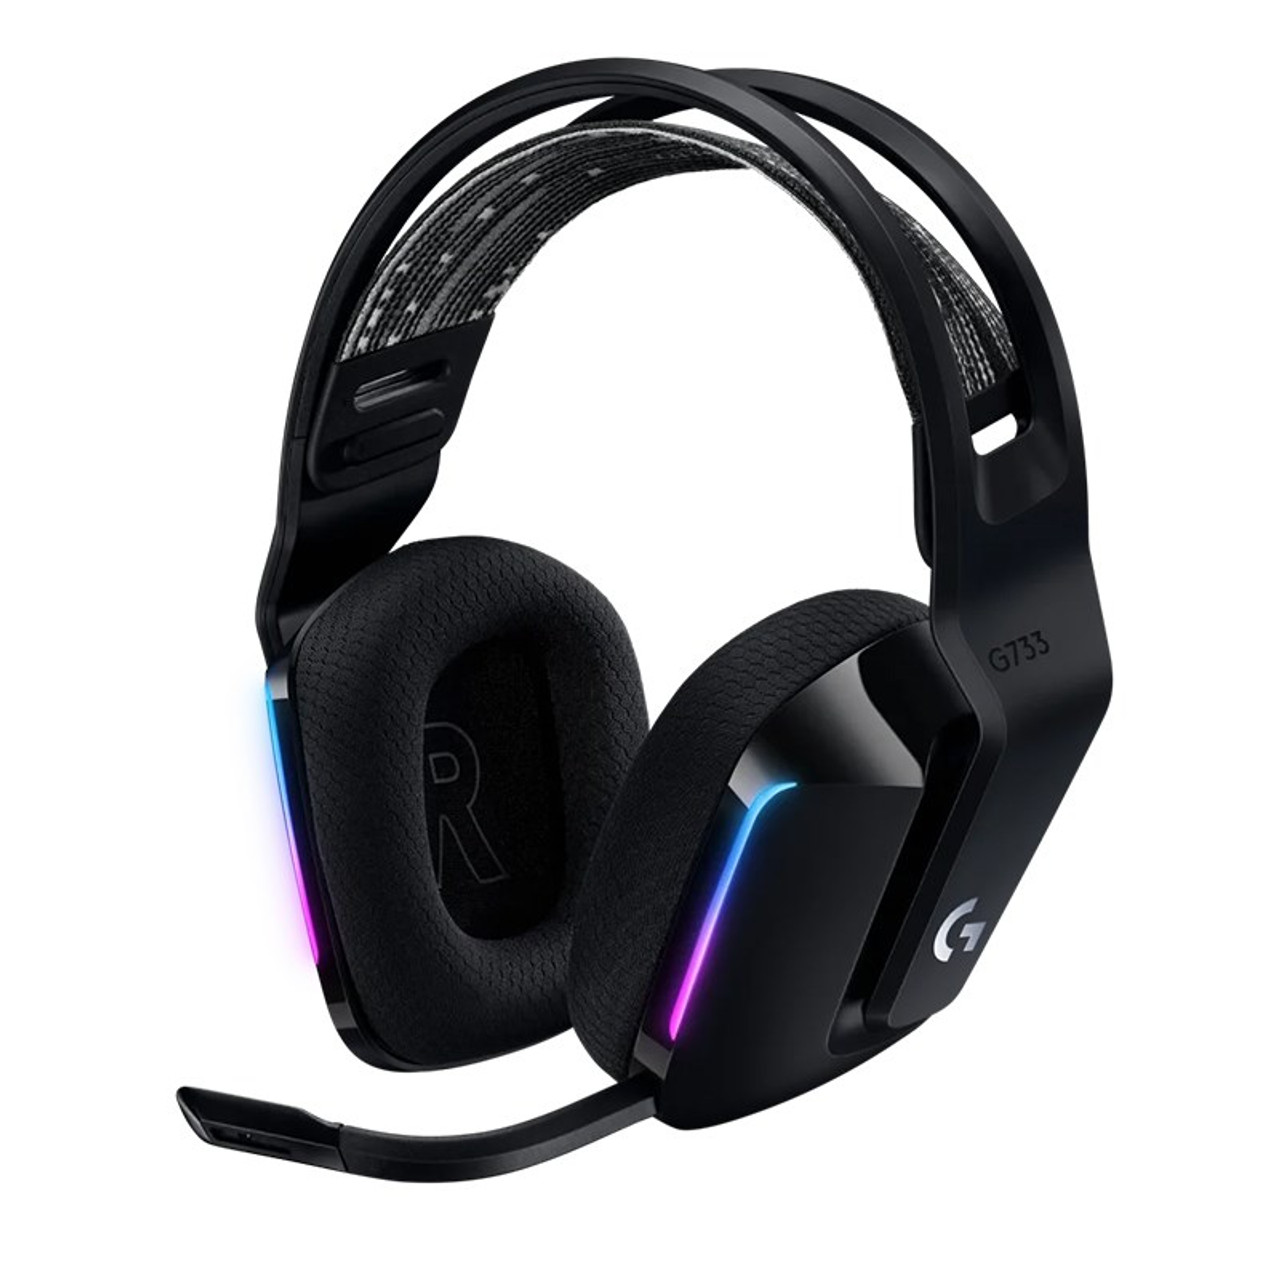 Image for Logitech G733 LIGHTSPEED Wireless RGB Gaming Headset - Black CX Computer Superstore